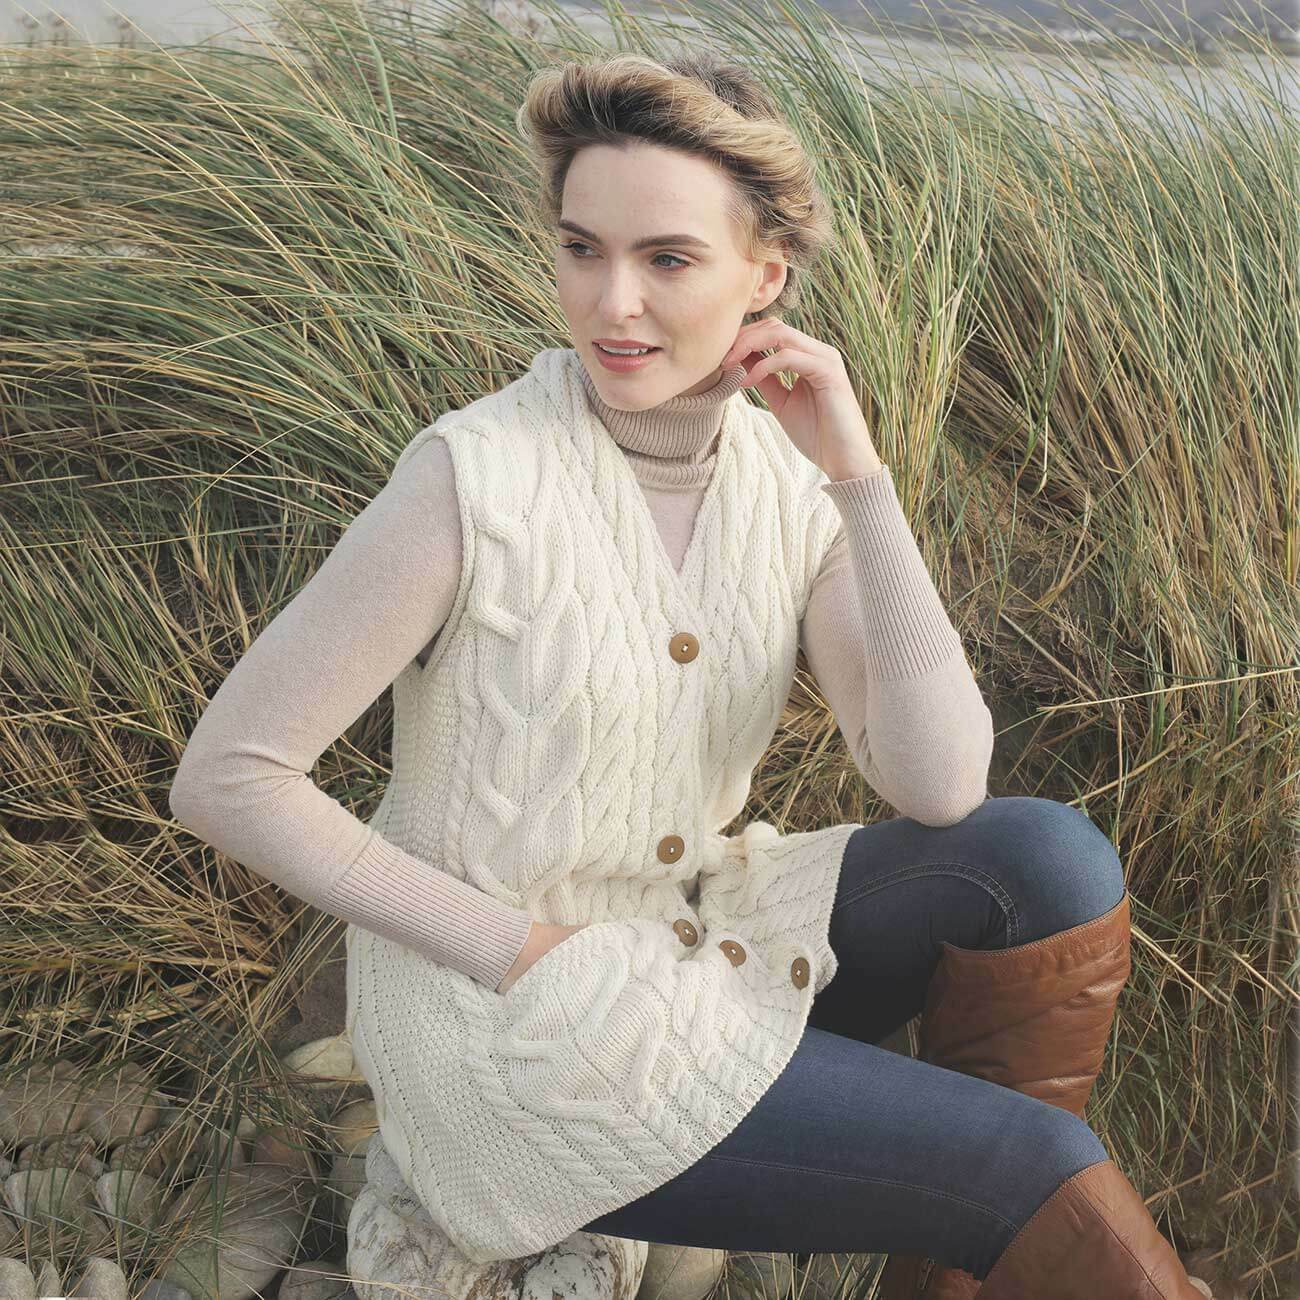 Women's Aran Wool Waistcoat 100% Irish Wool Wool Wool -Natural, Aran Wollen Mills B850-367 74a5fe